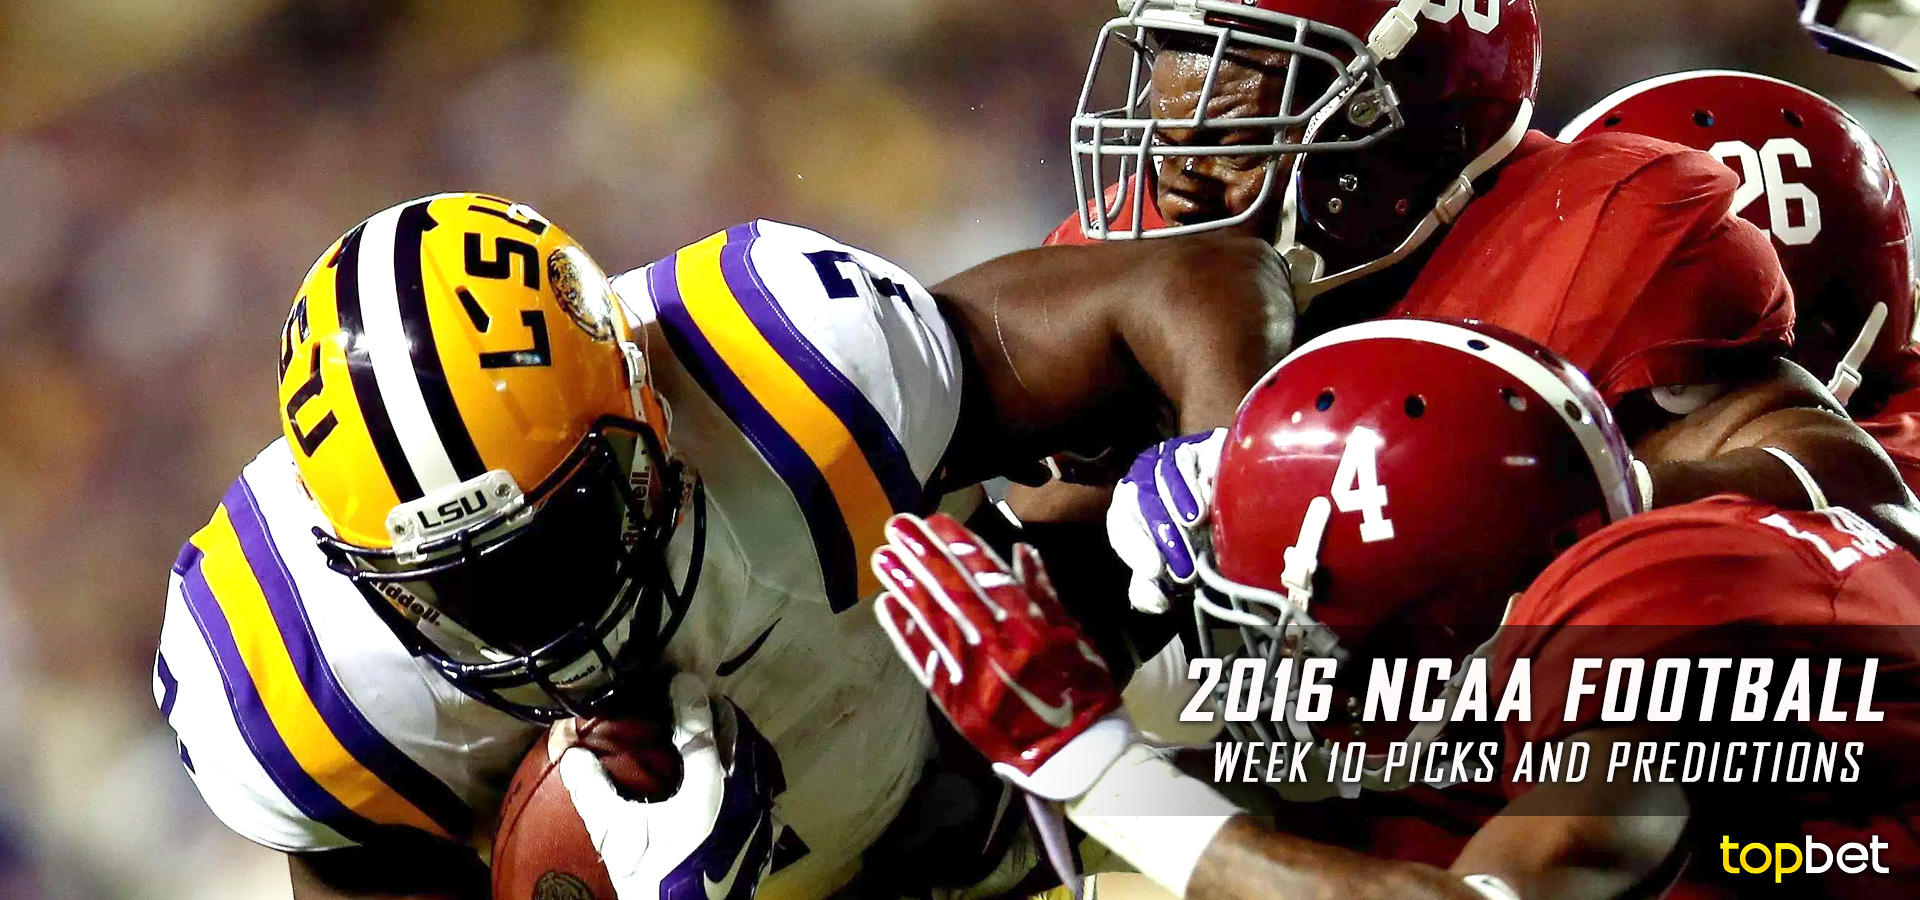 College Football Week 10 Predictions and Picks 2016-17